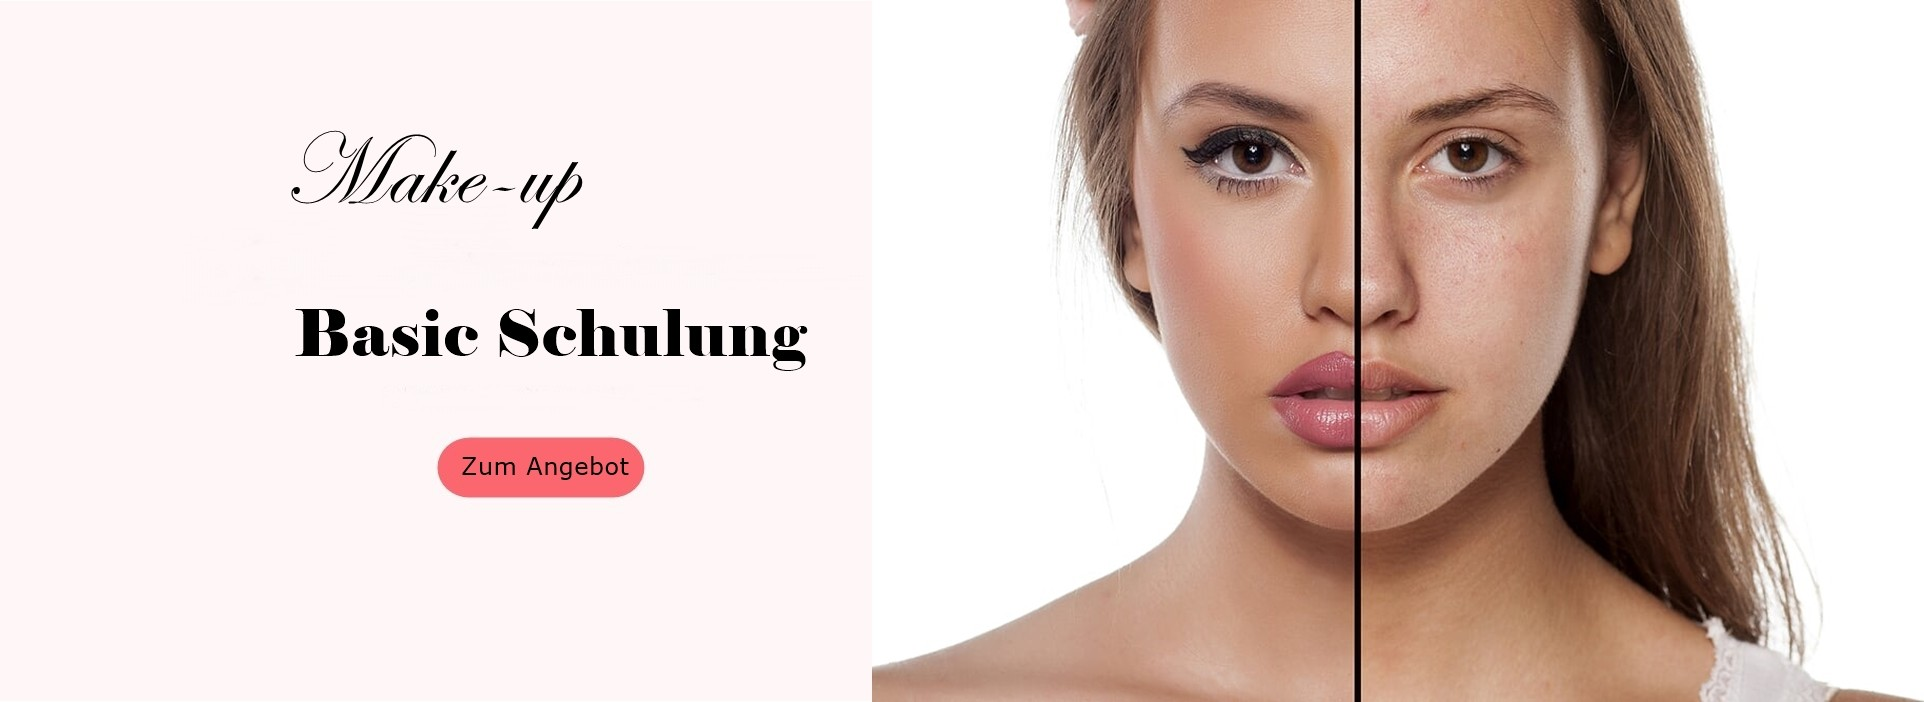 Make-Up - Basic Schulung